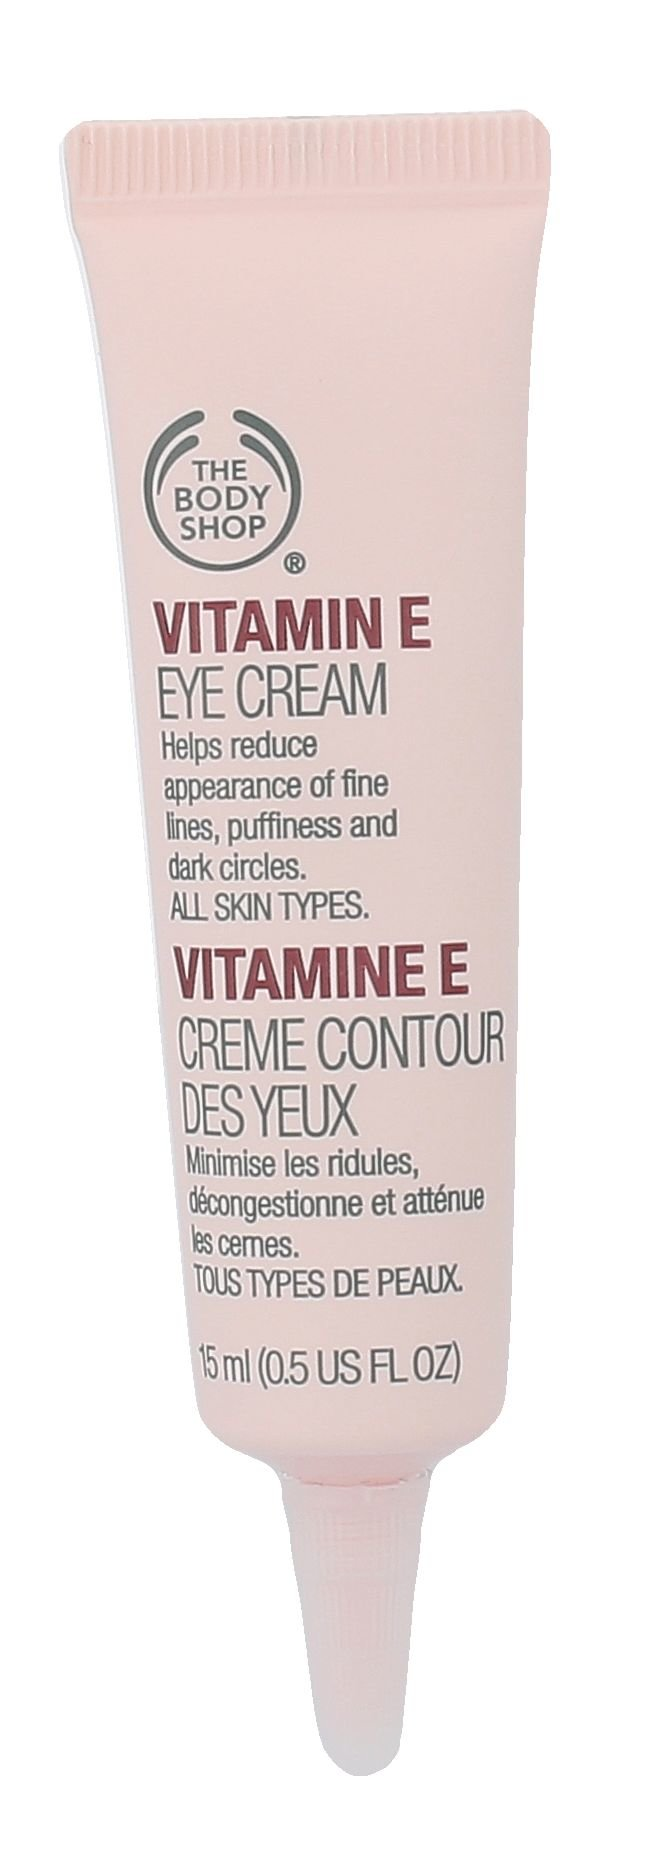 The Body Shop Vitamin E Cosmetic 15ml